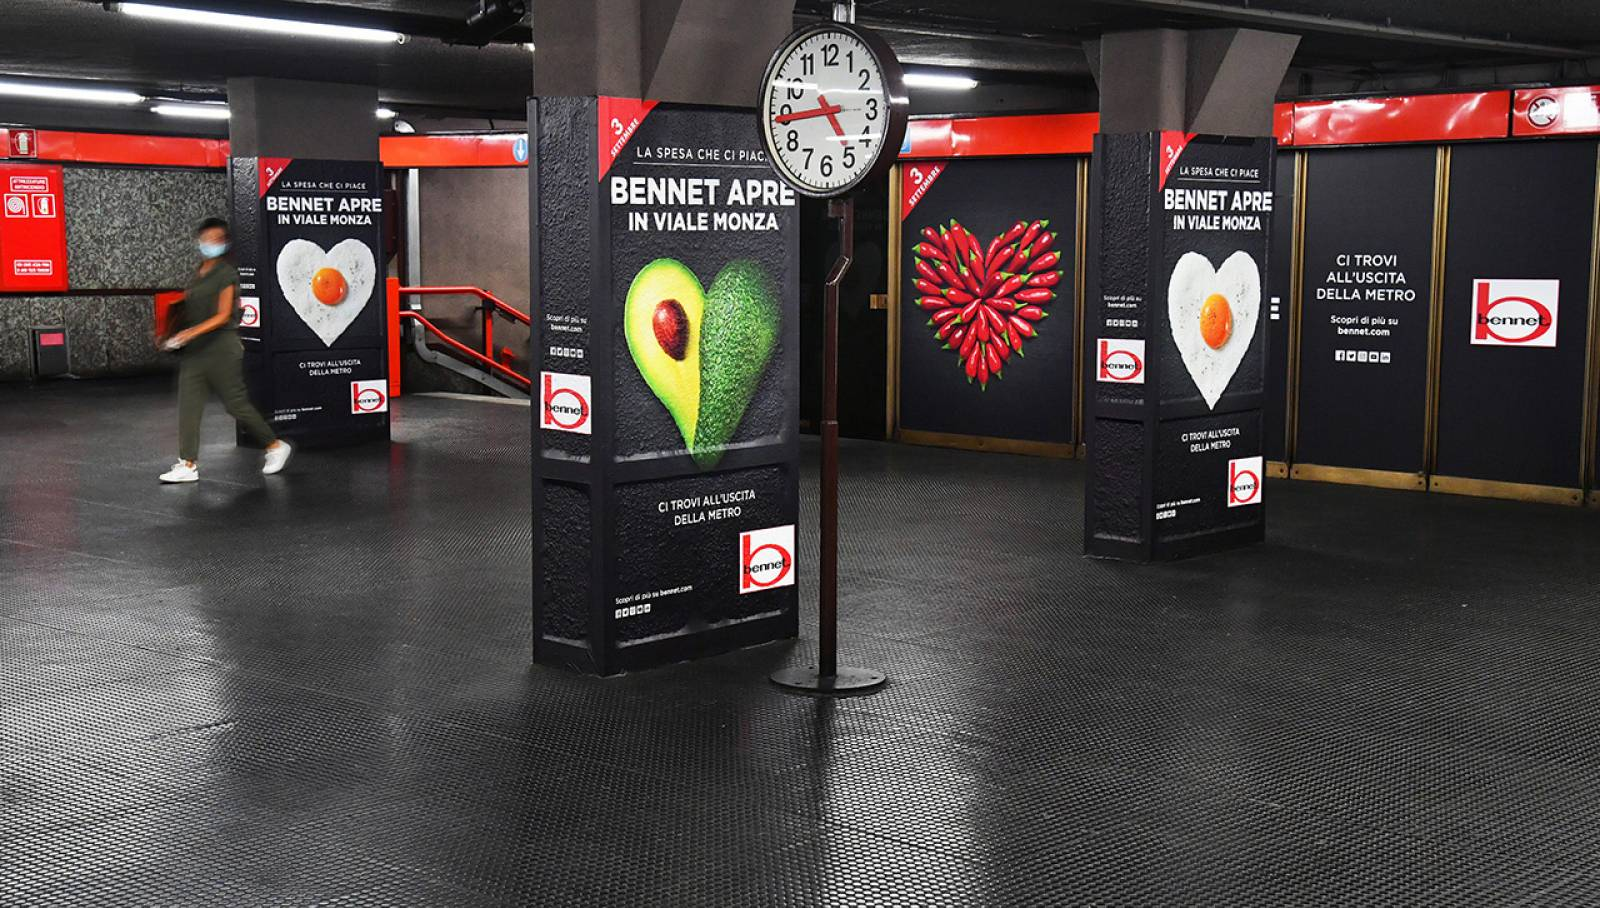 OOh advertising in Milan IGPDecaux Station Domination for Bennet